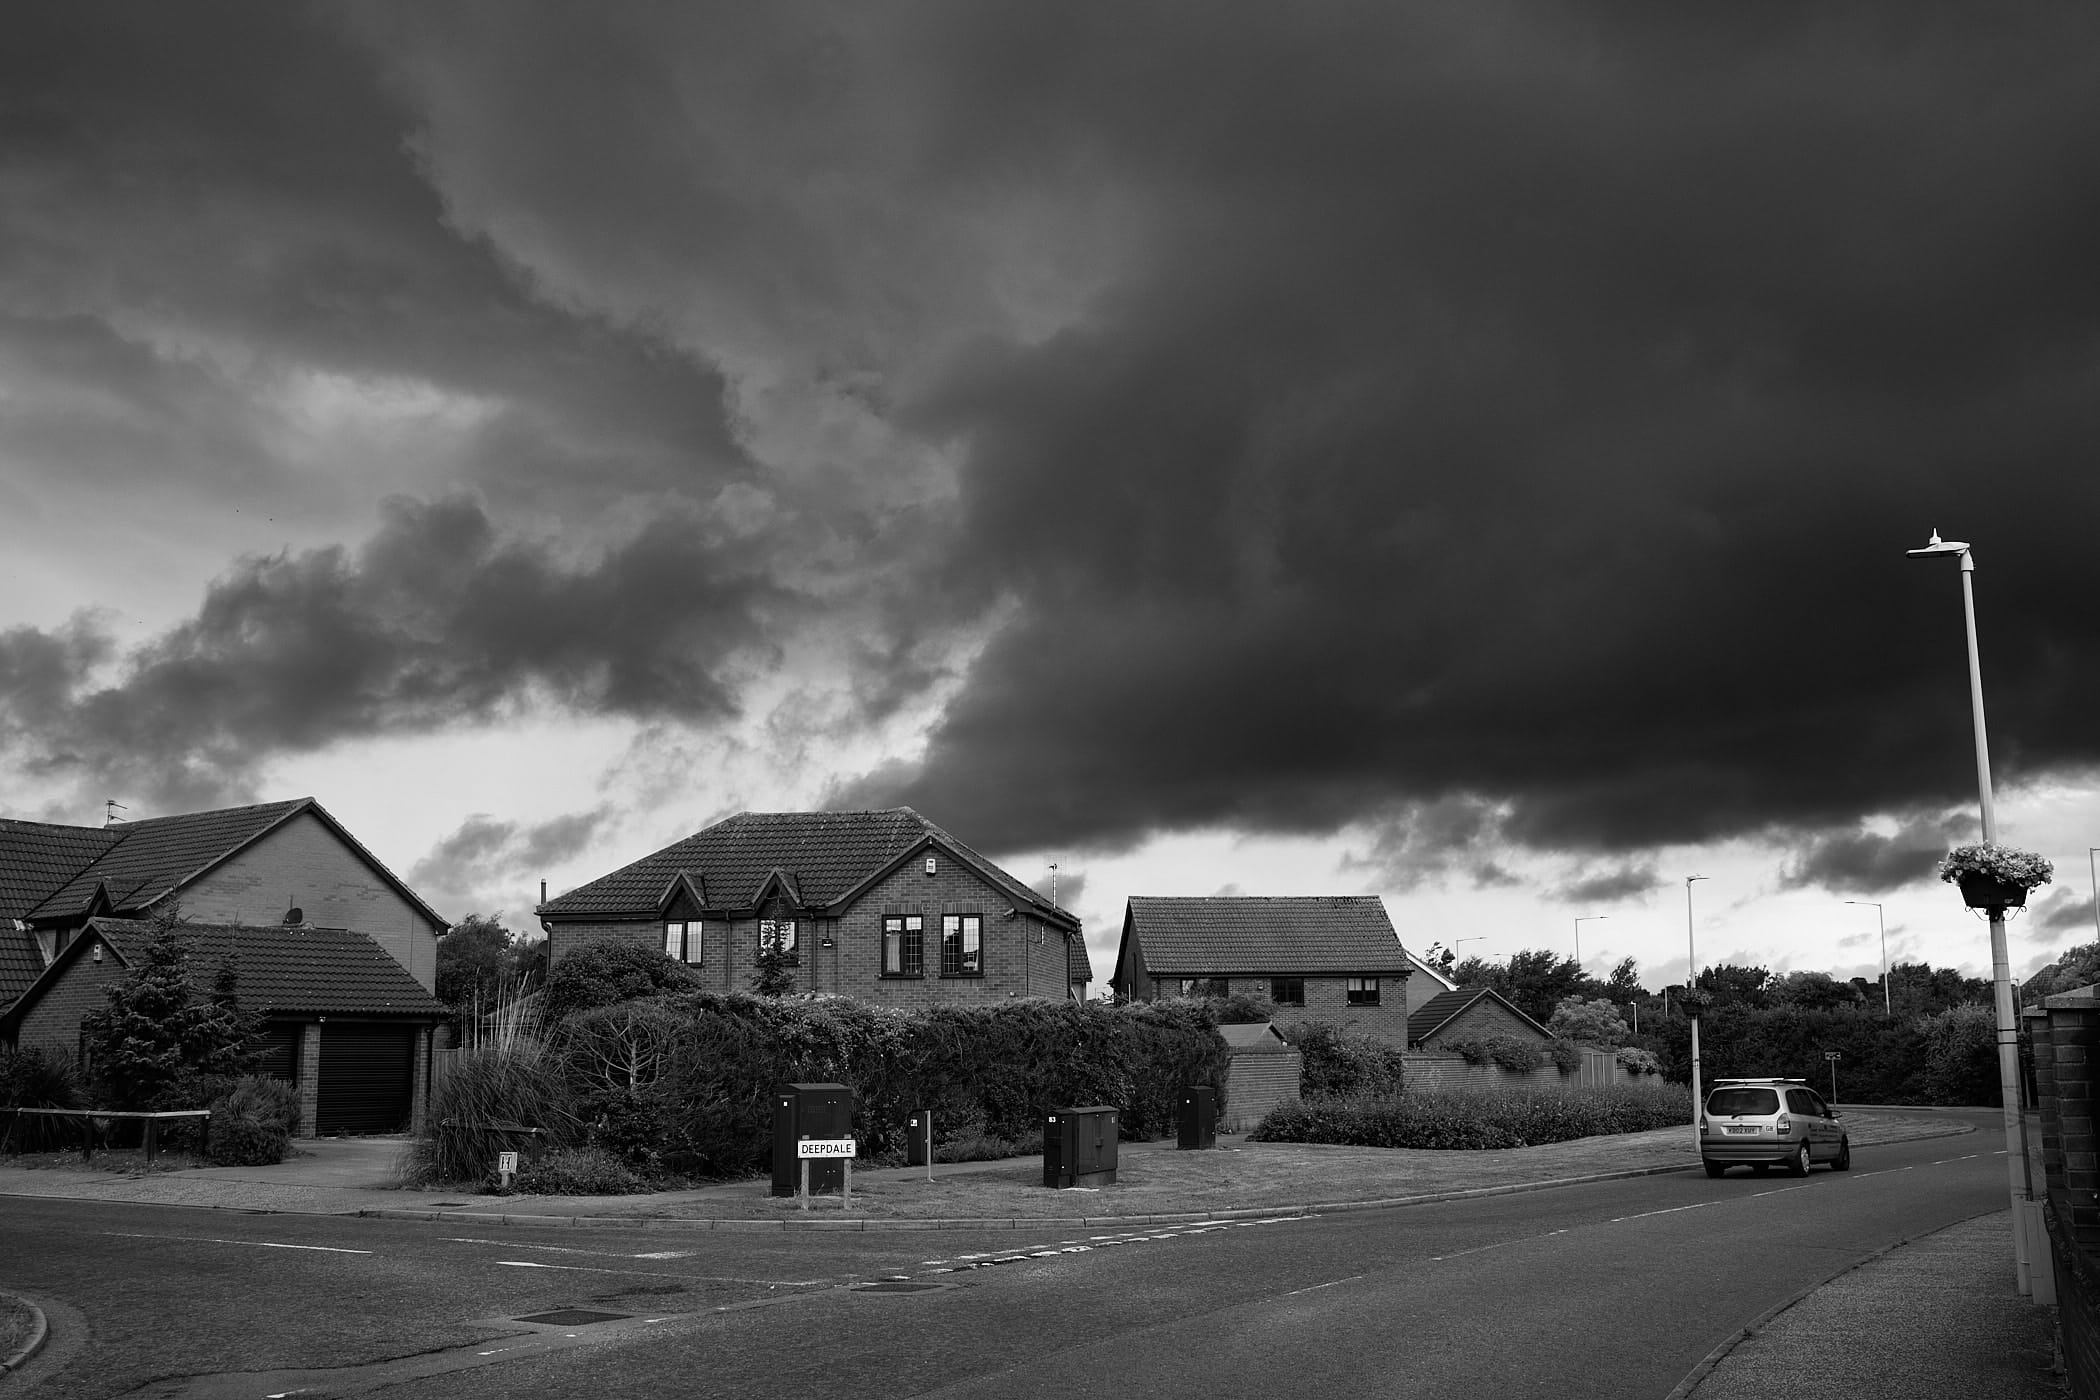 stormclouds over residential area